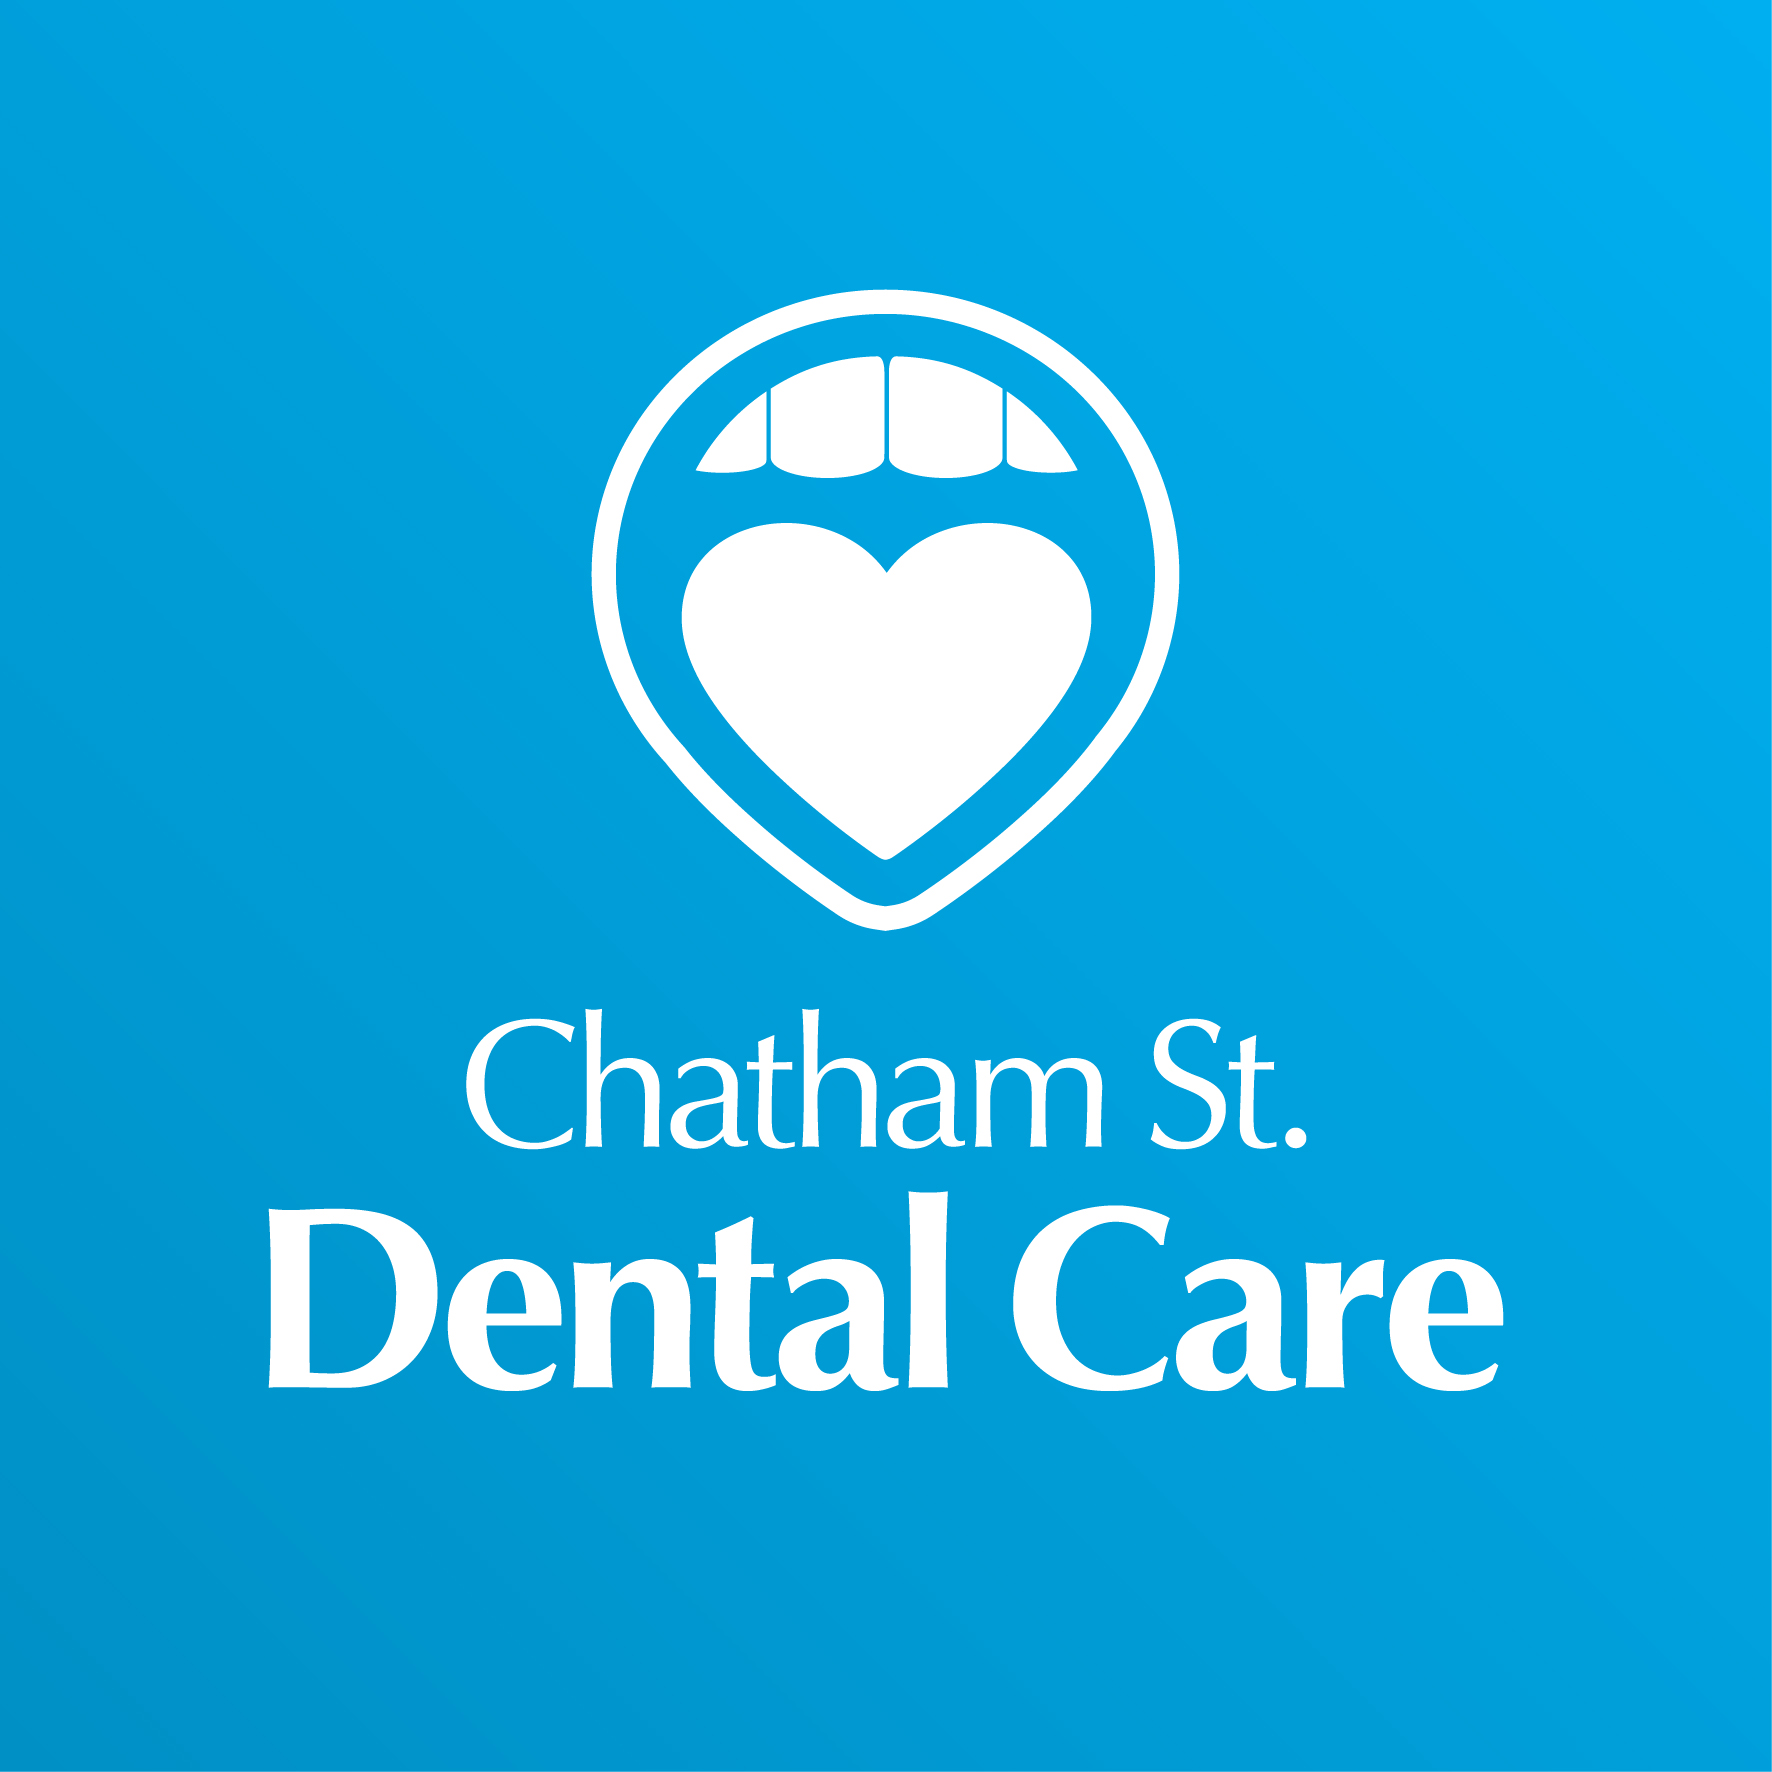 Chatham St Dental Care